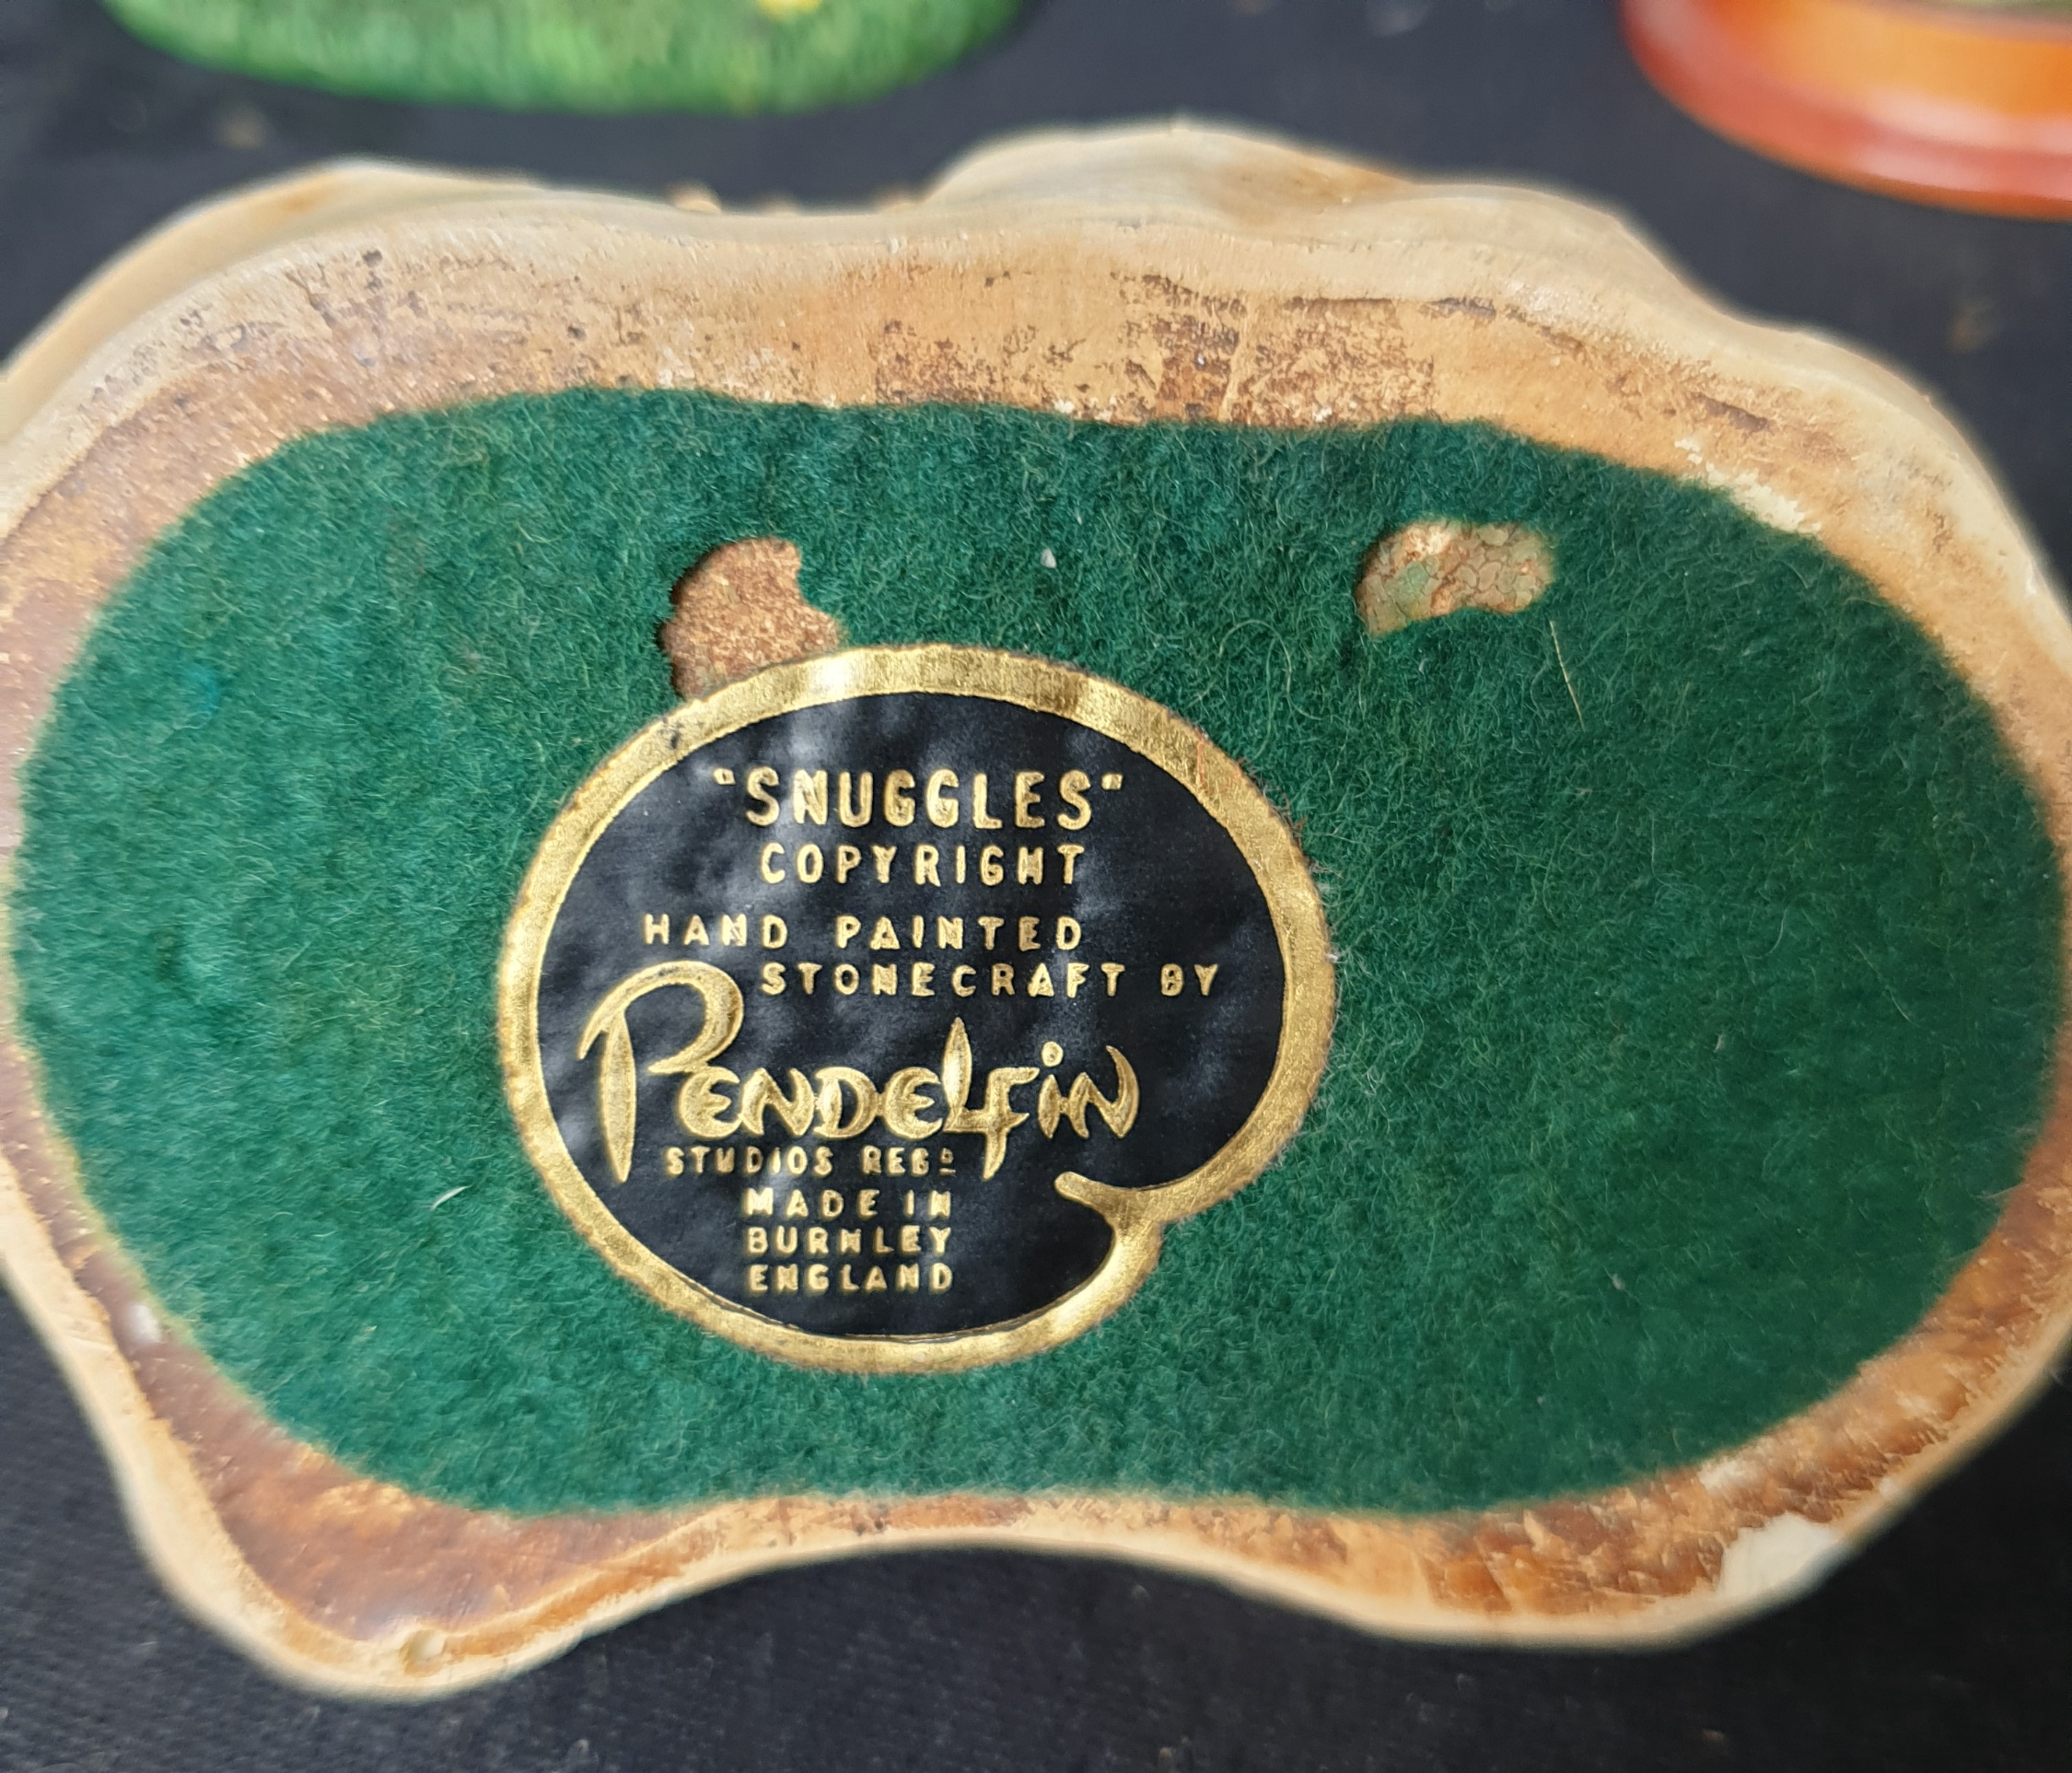 Vintage Parcel of Figures Includes Pendelfin Snuggles - Image 2 of 2